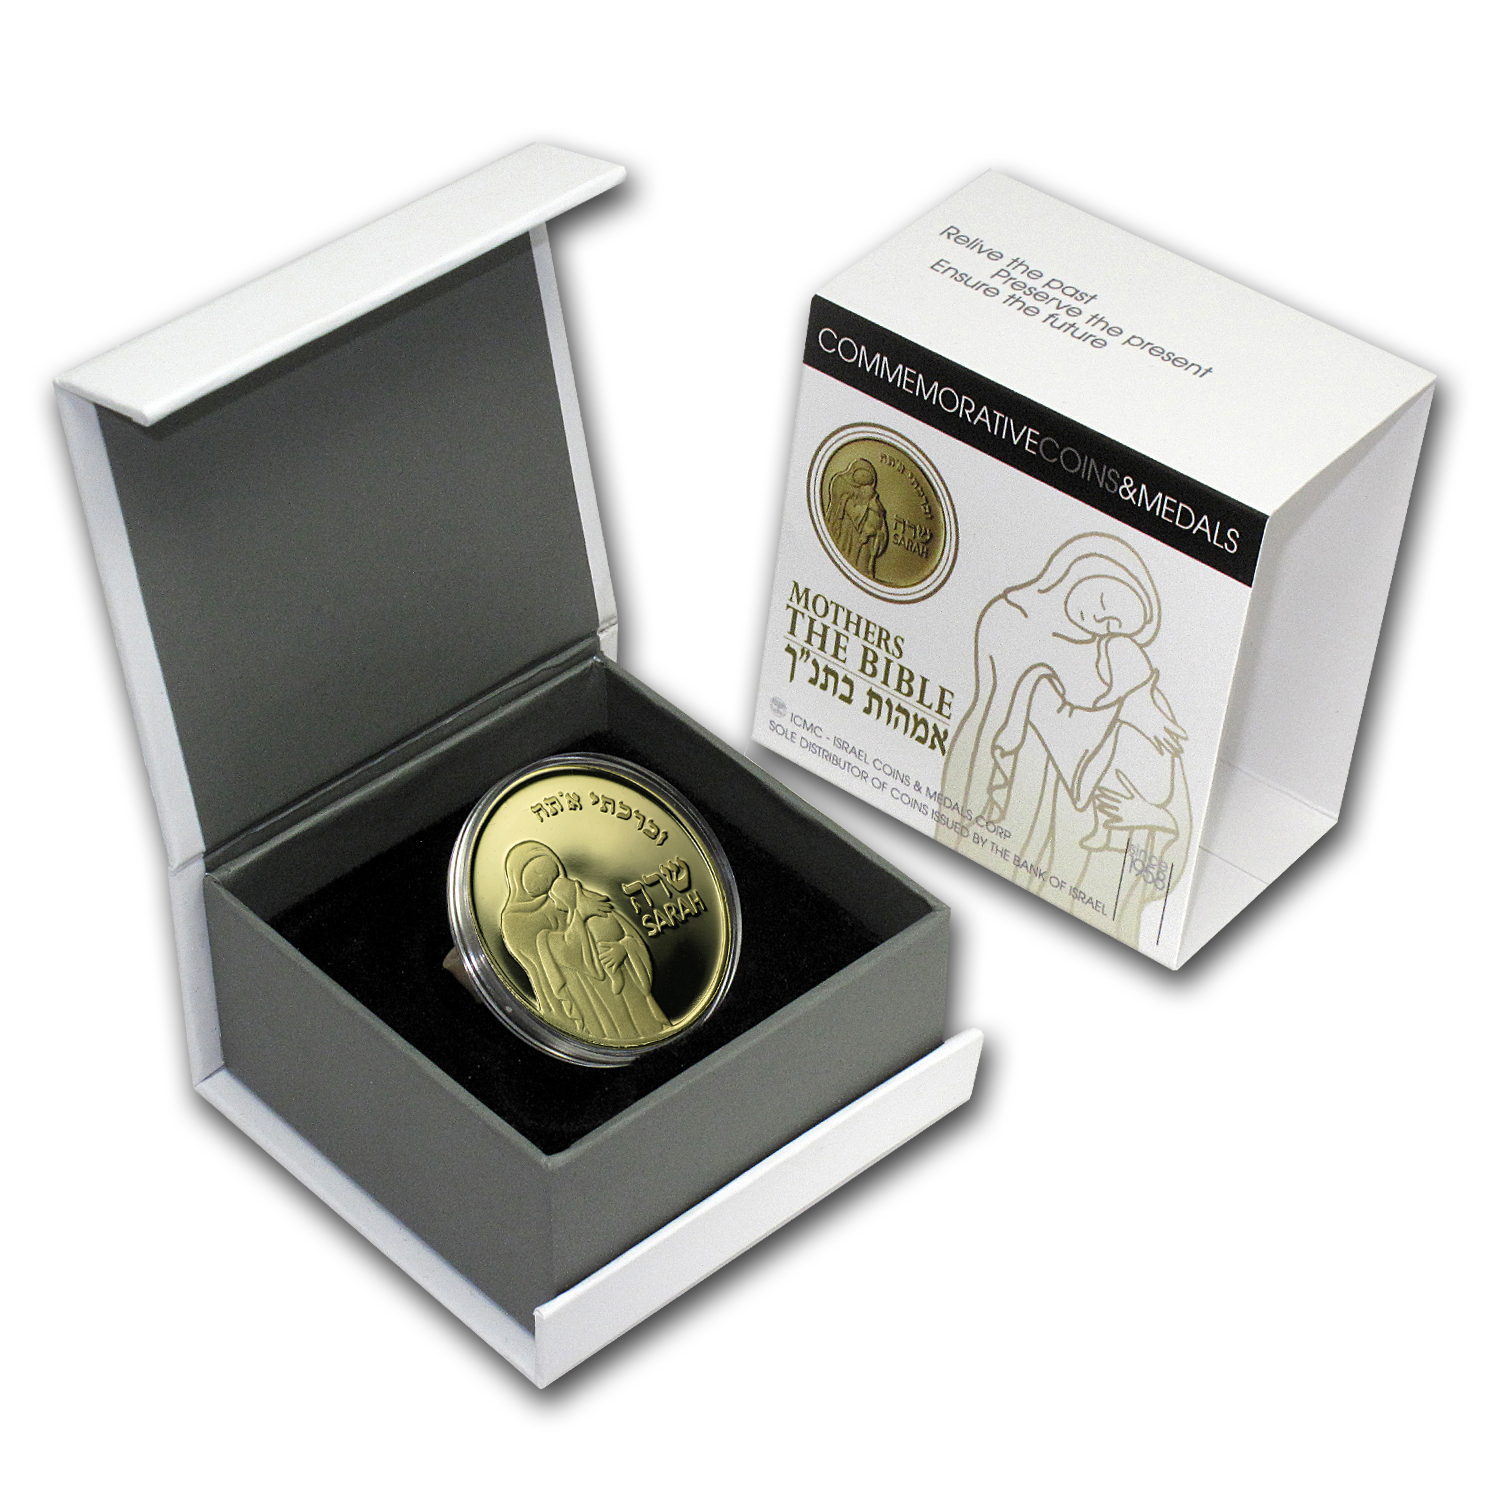 2007 Israel Sarah Proof Gold Medal AGW .32 oz